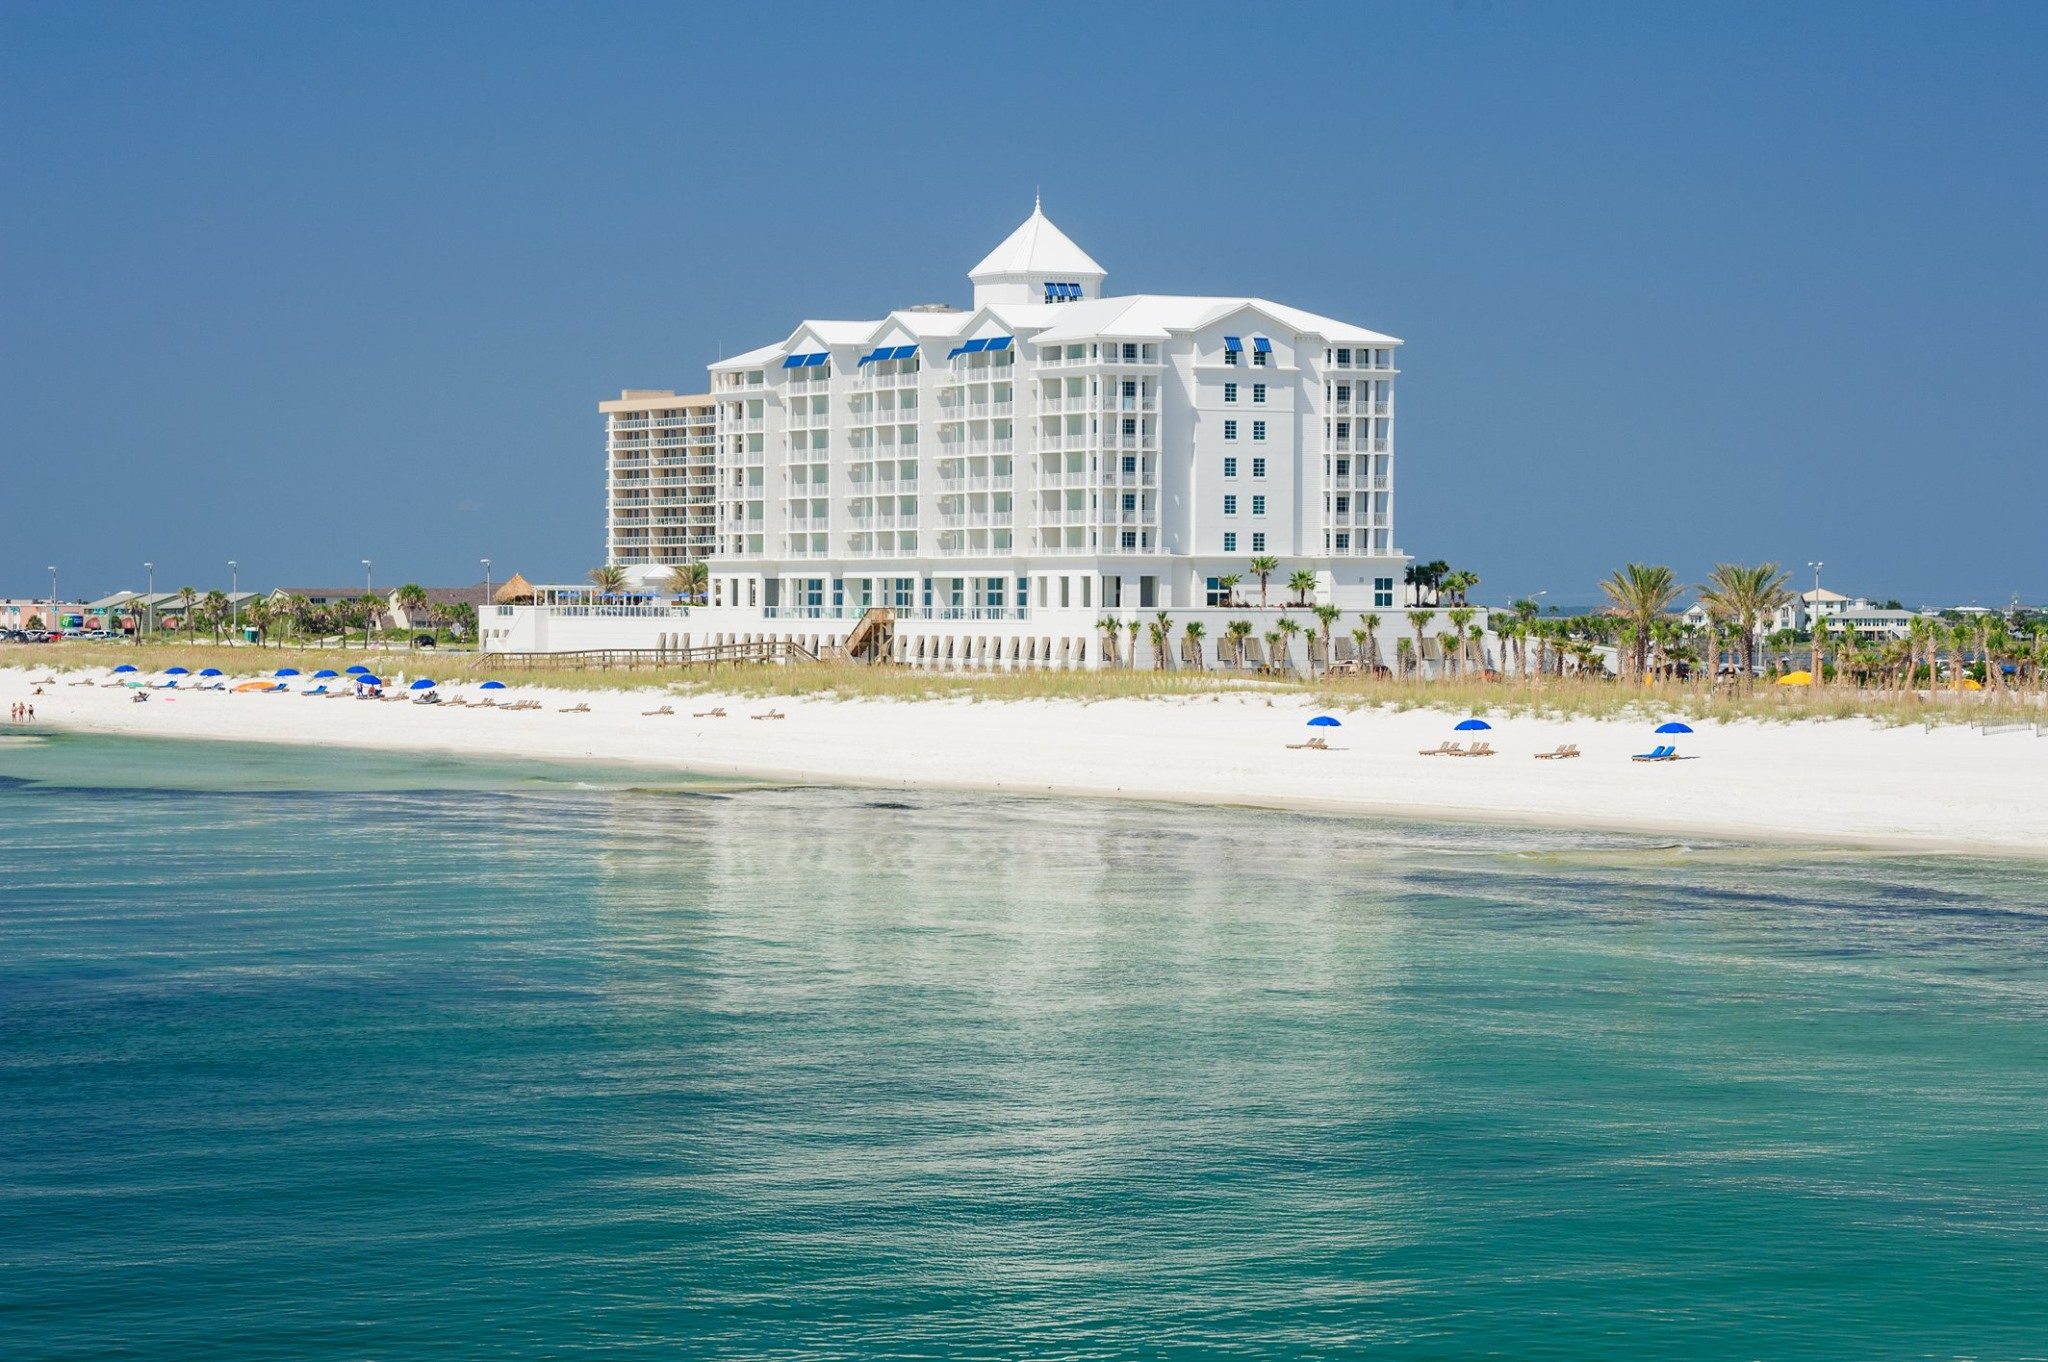 Travelers Guide to the Top 10 Hotels in Pensacola Beach, Florida